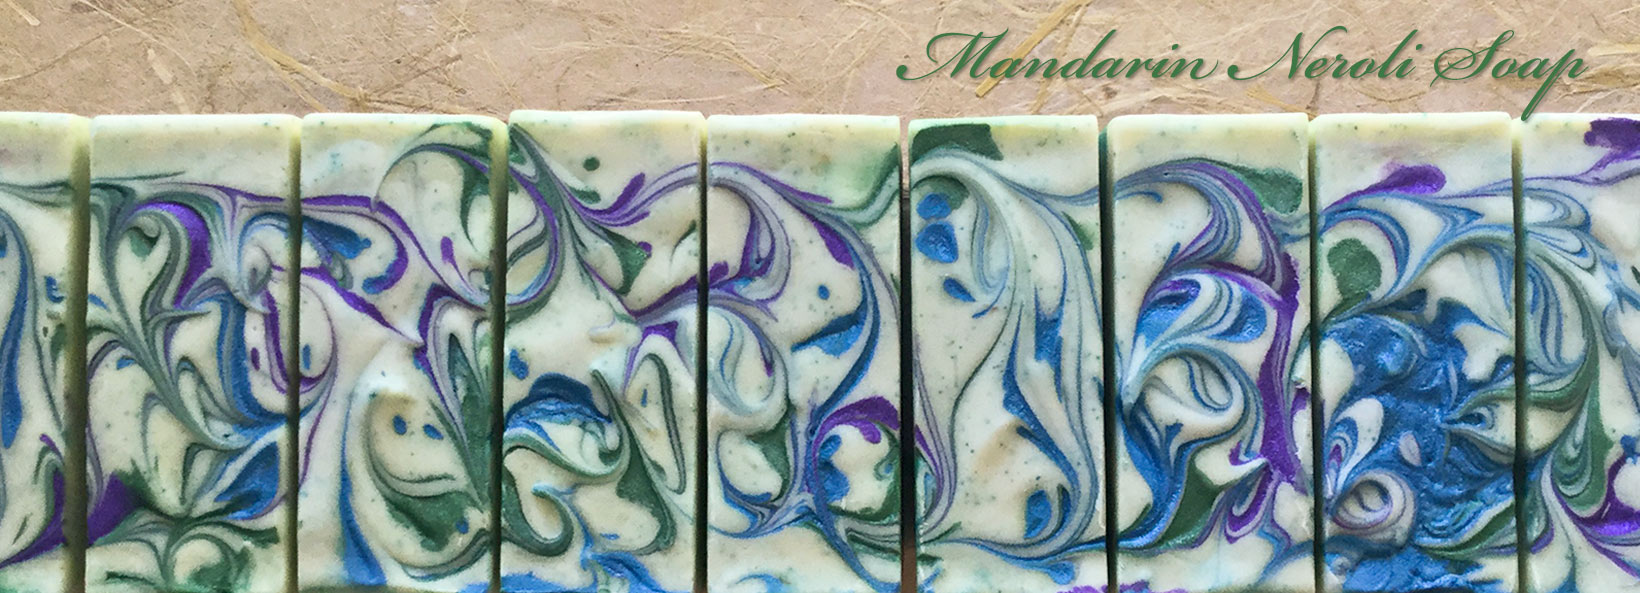 Home Bella Fresca Handcrafted Soaps And Body Products